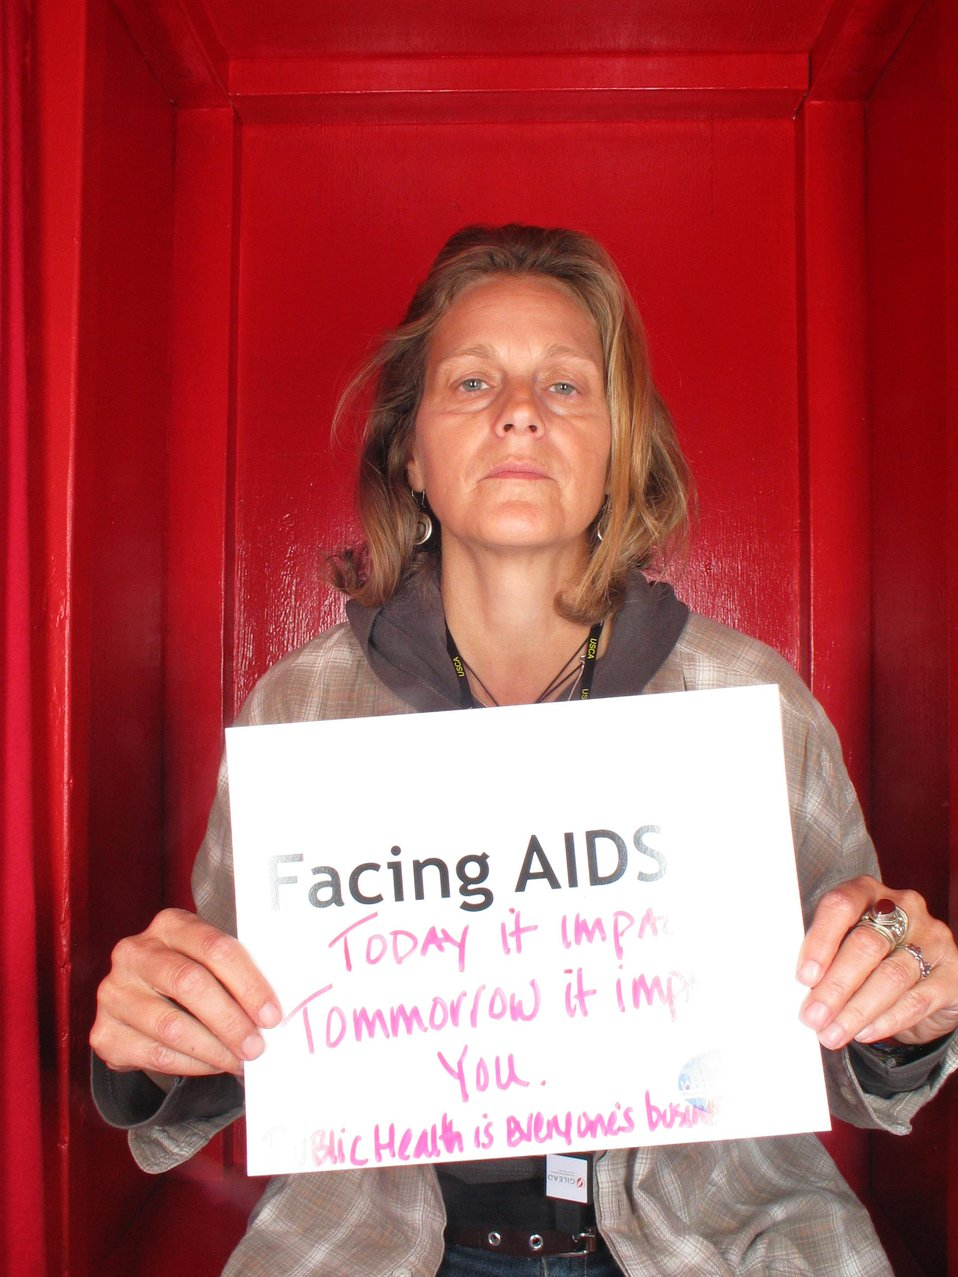 Facing AIDS today it impacts...tomorrow it impacts YOU. Public Health is everyone's business